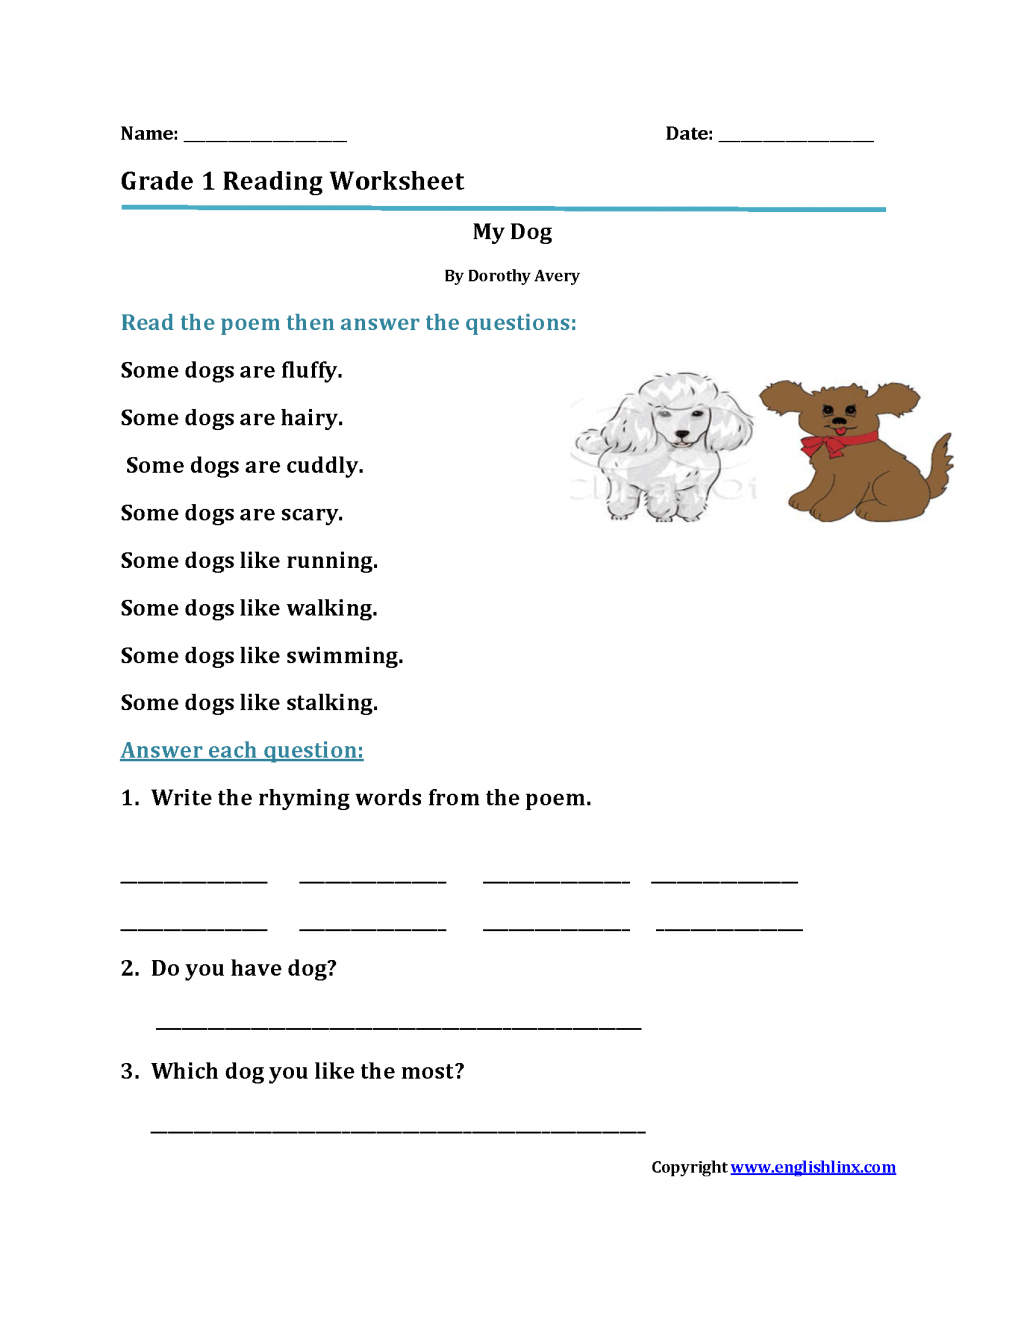 First Grade Common Core Reading Worksheets Free With Plus Spanish - Free Printable Spanish Reading Comprehension Worksheets